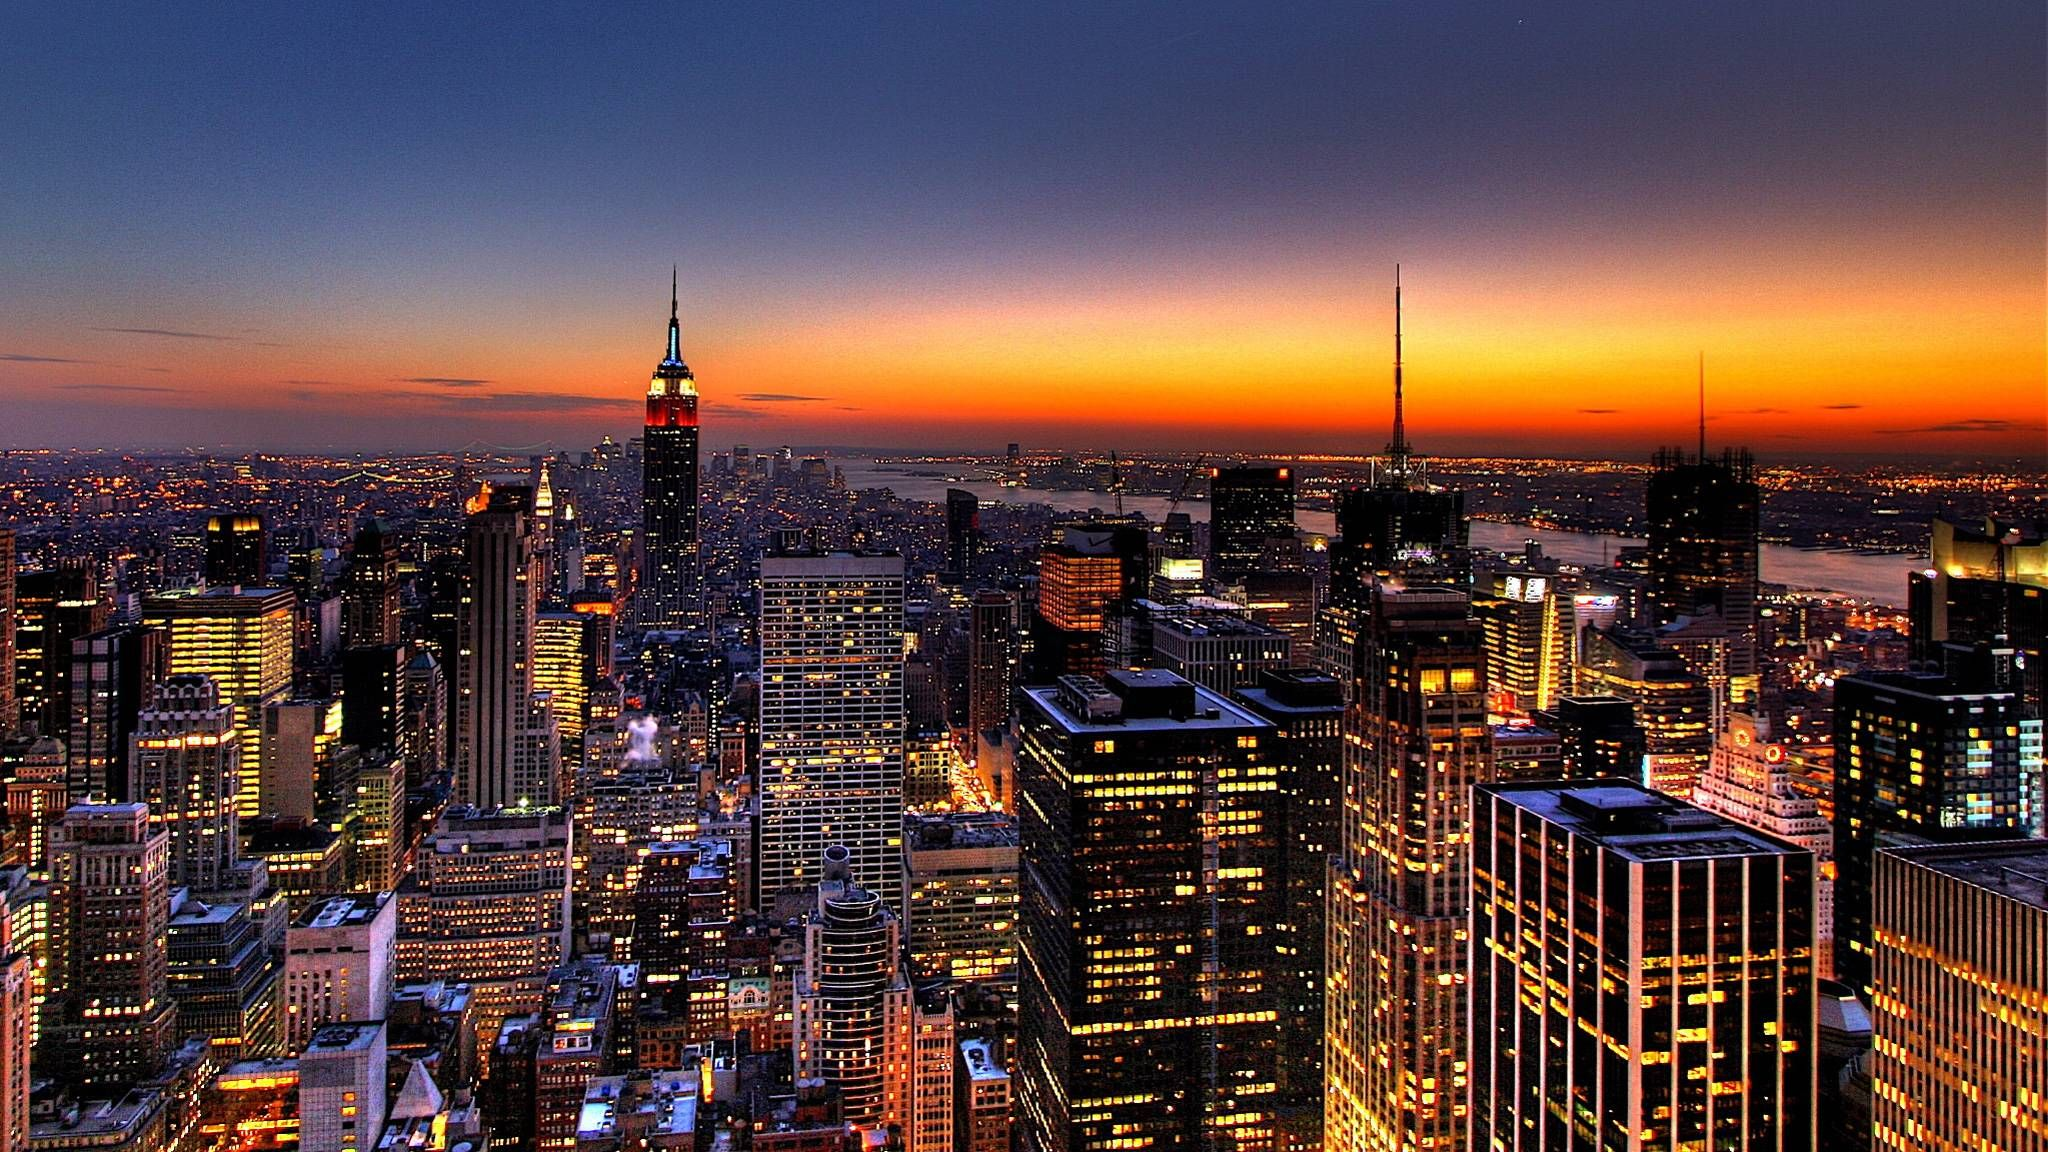 Download This Awesome Wallpaper Wallpaper Cave New York Wallpaper New York Night Nyc Skyline